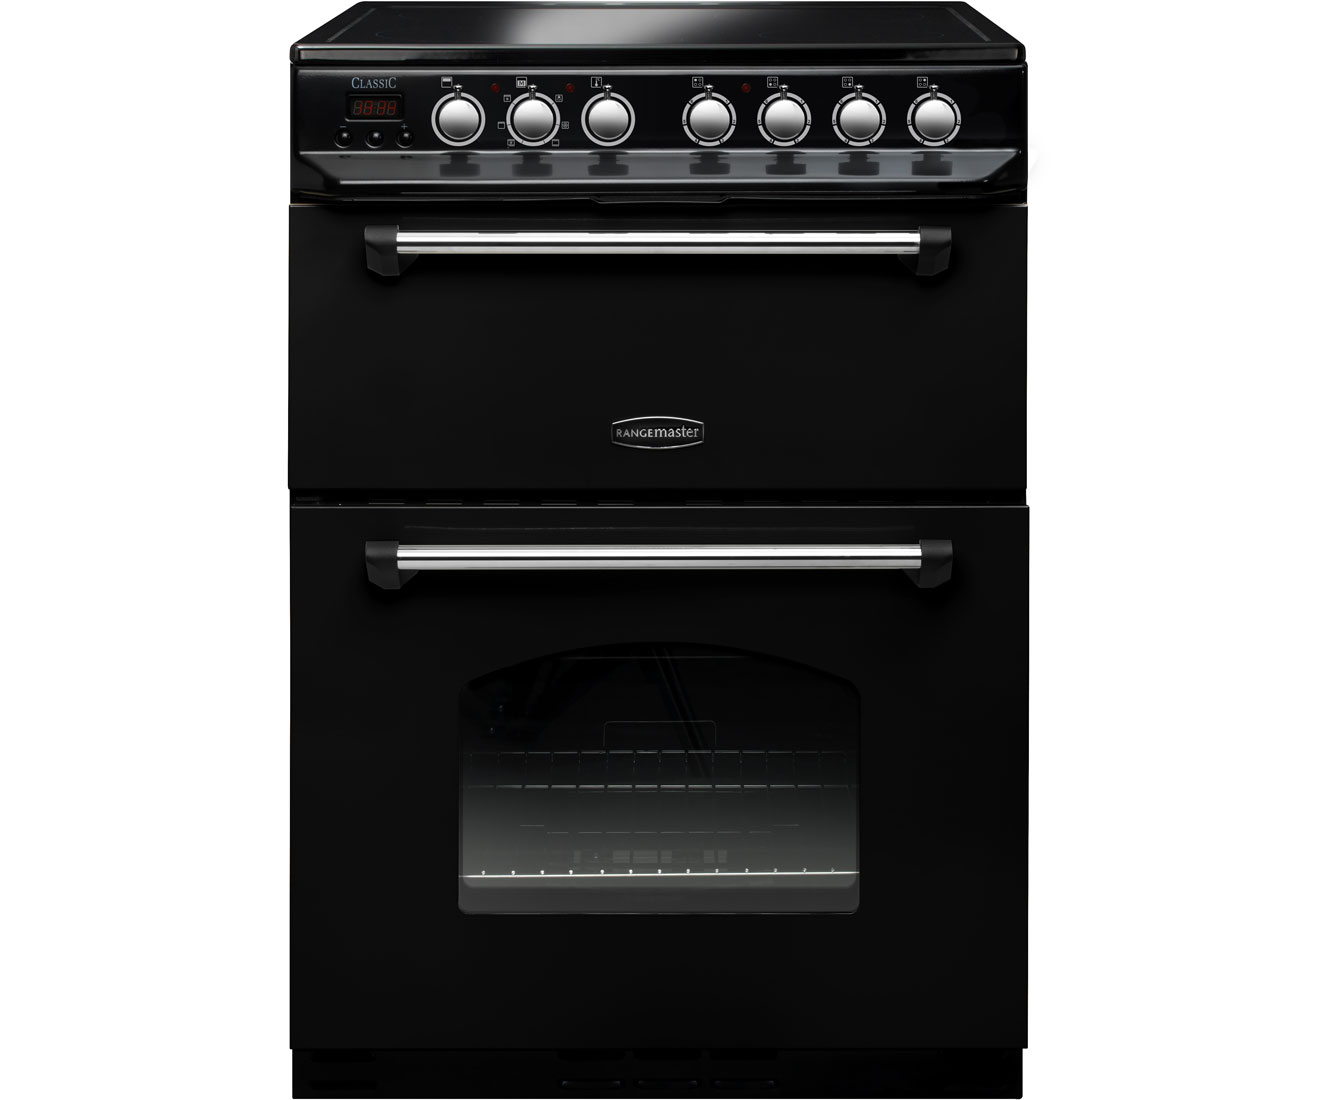 Rangemaster Classic 60 CLAS60ECBLC Free Standing Cooker in Black  Chrome